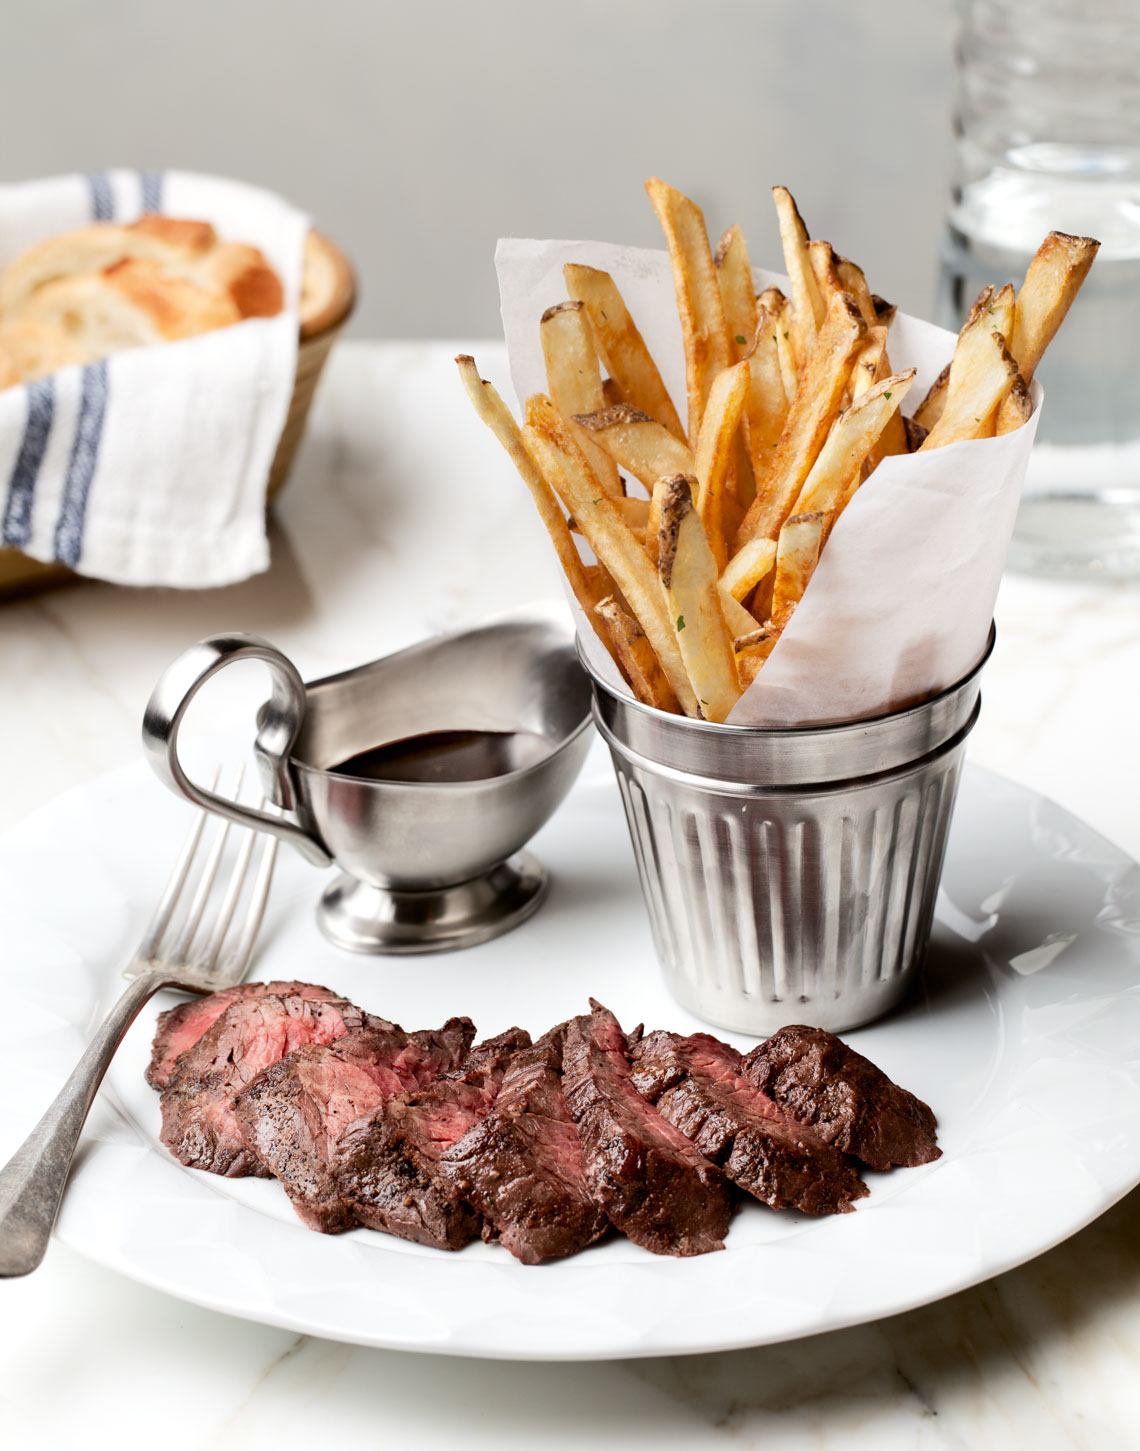 Bardot / Steak Frites (no butter on steak, fries in cup)